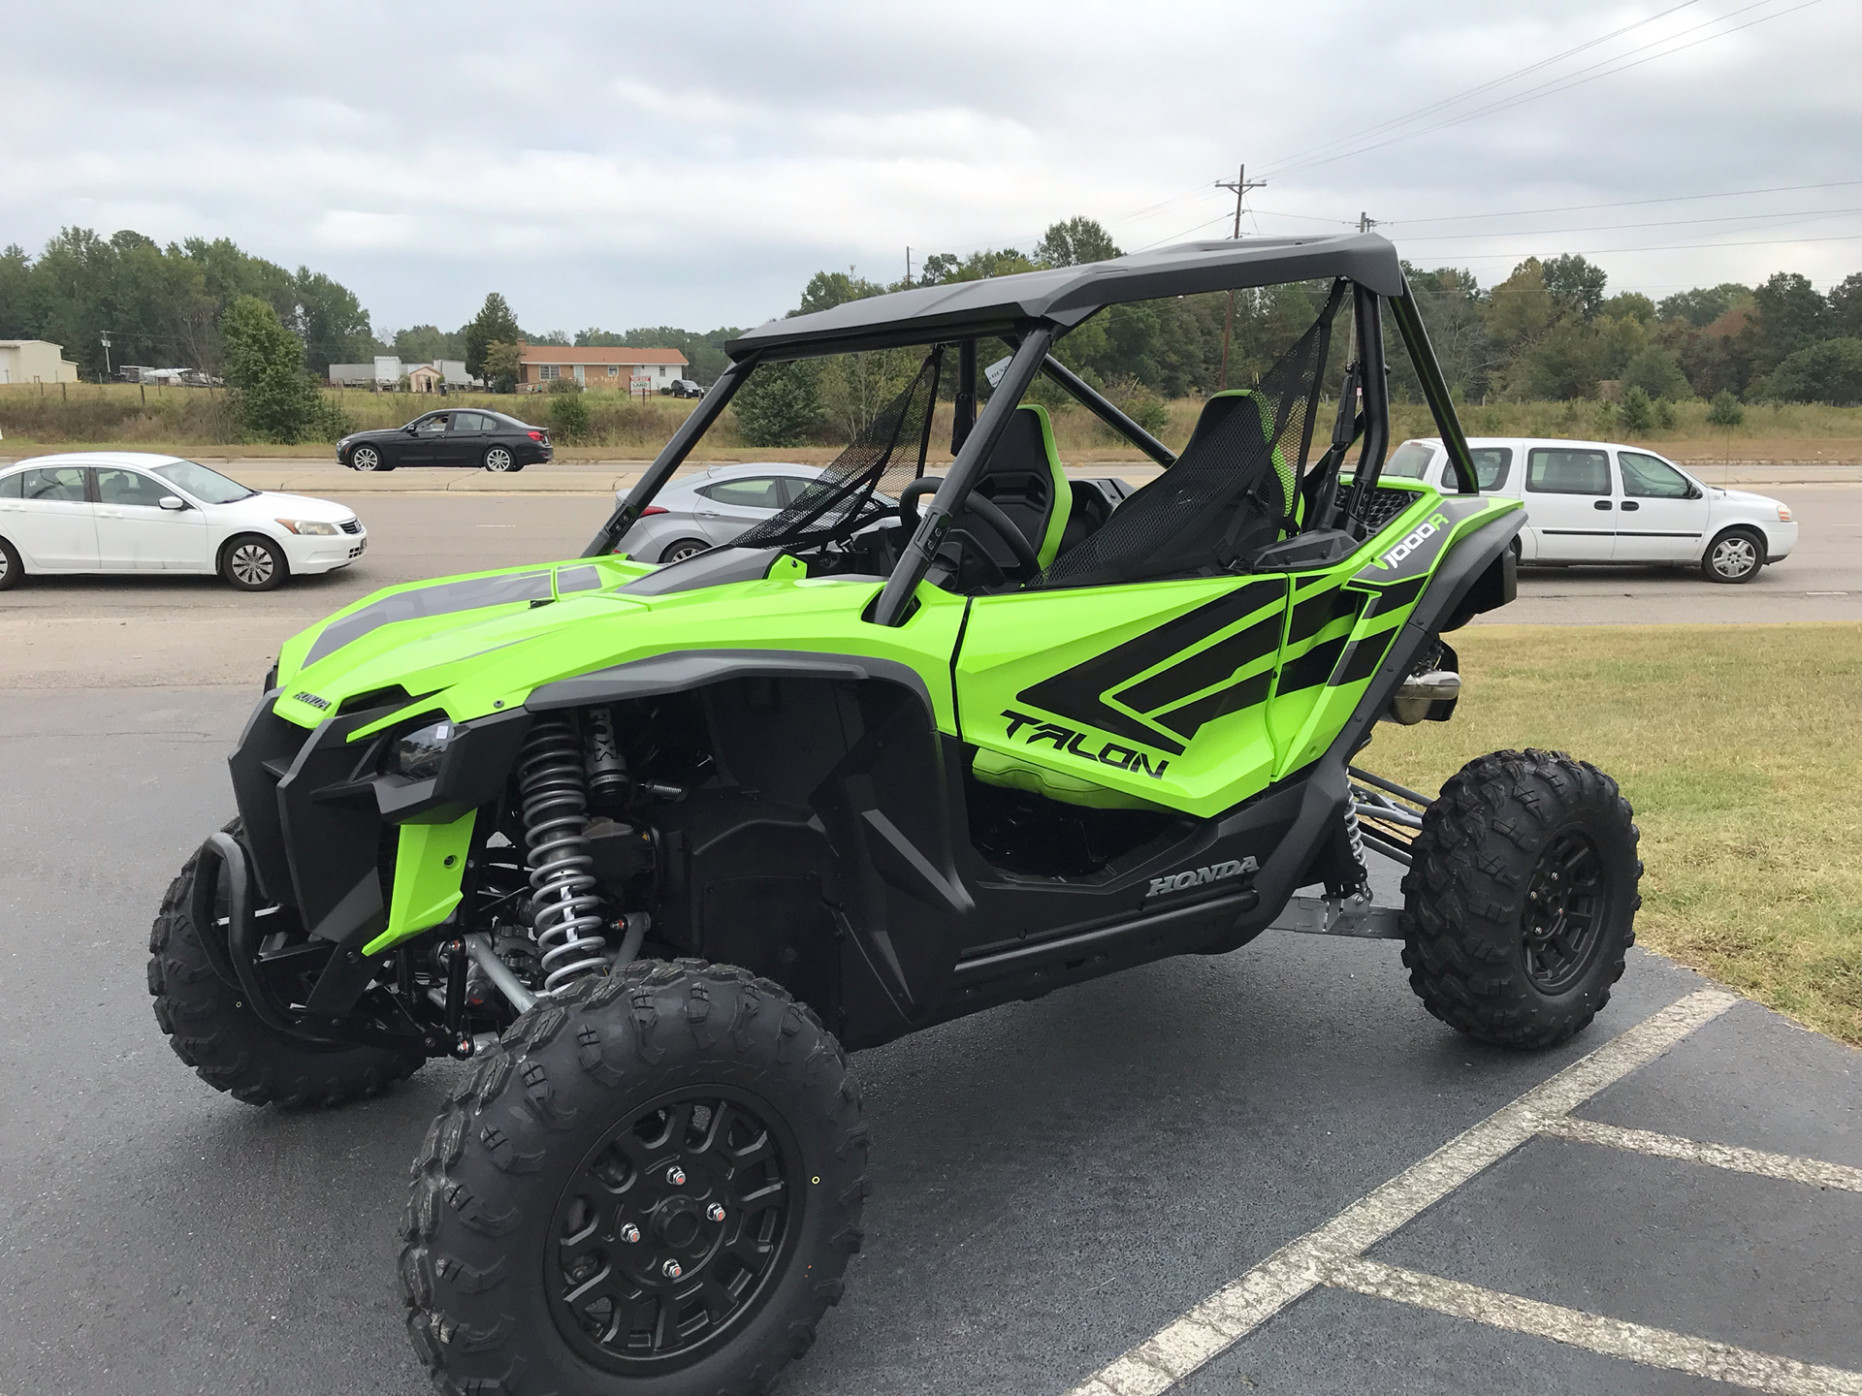 8 Honda Talon 8R For Sale in Sanford, NC - ATV Trader - 2020 honda talon 1000r